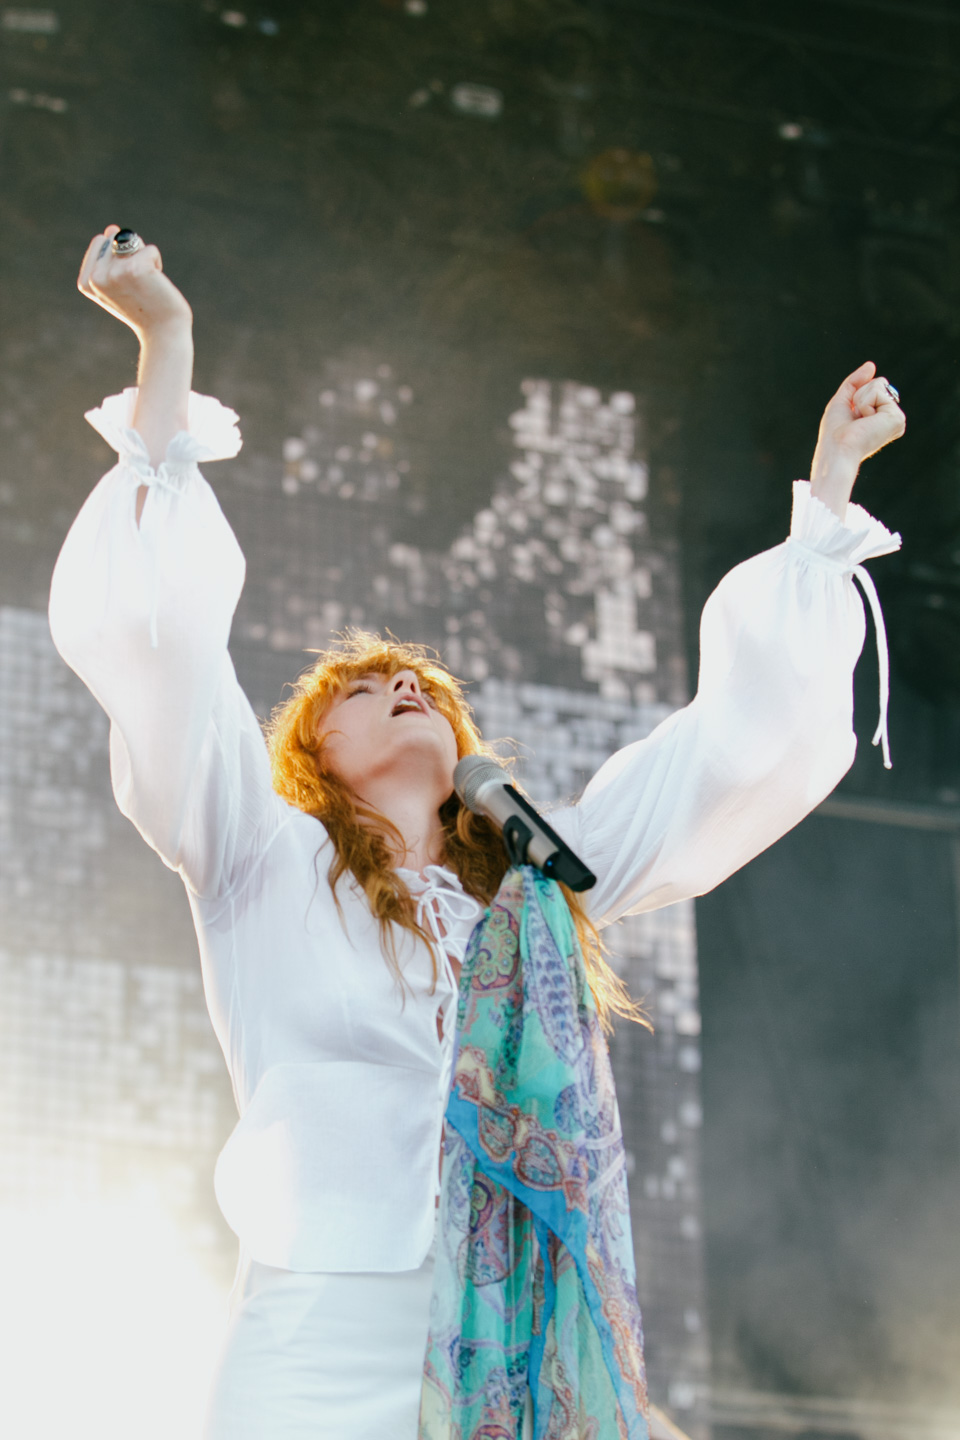 Florence & The Machine at Bonnaroo 2015